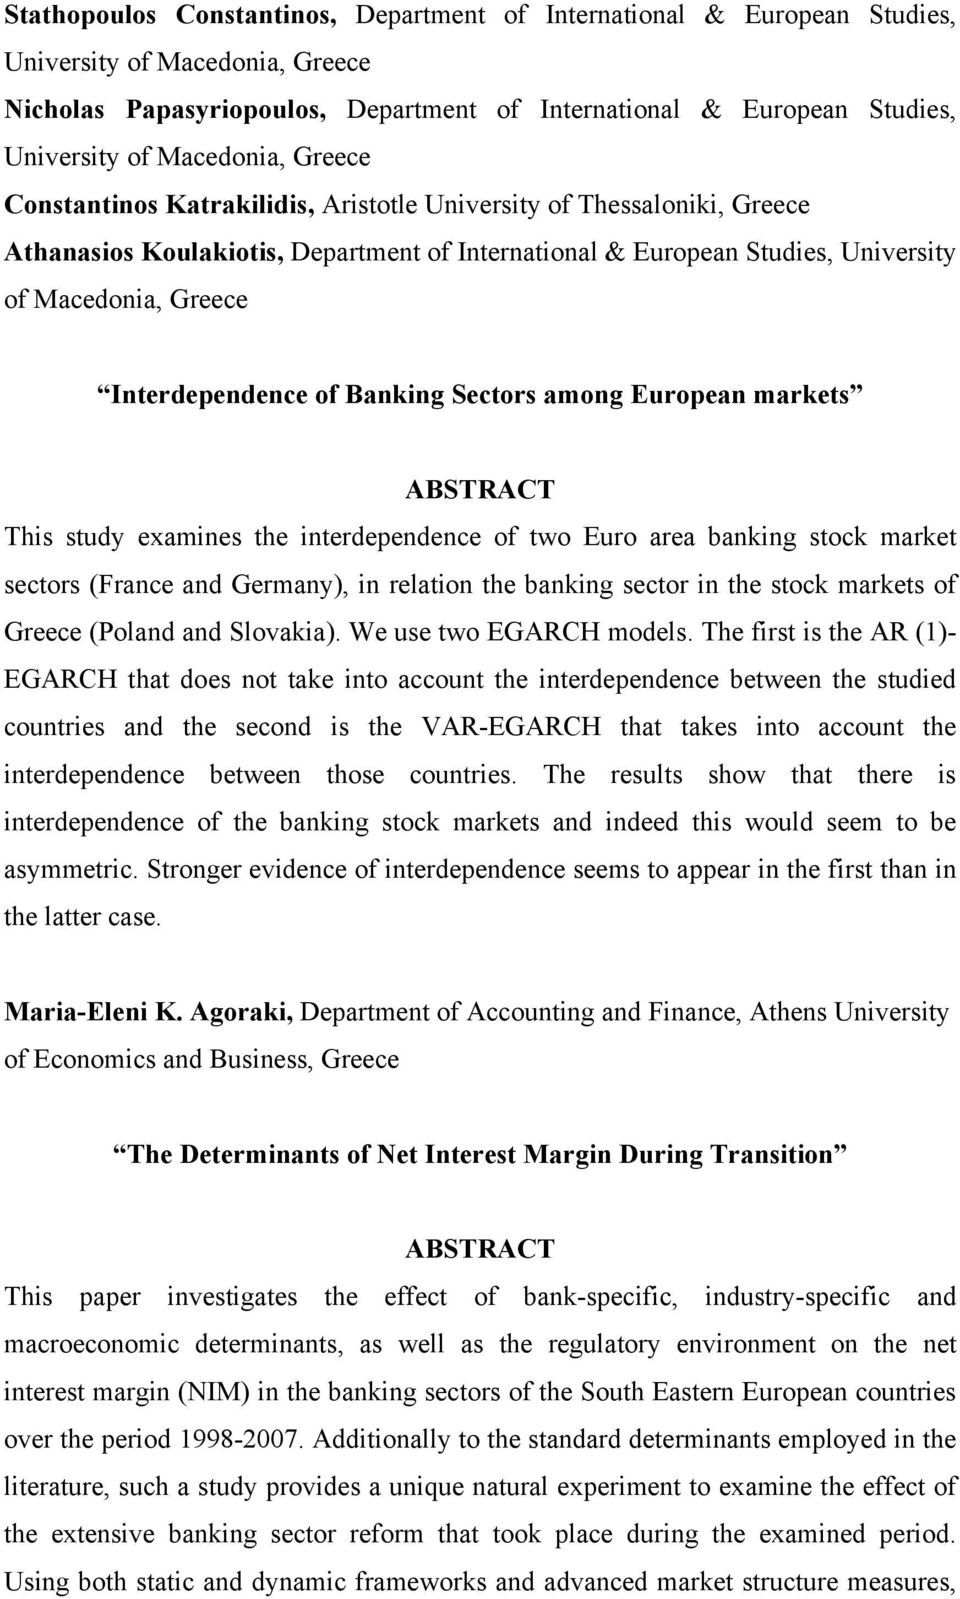 Interdependence of Banking Sectors among European markets This study examines the interdependence of two Euro area banking stock market sectors (France and Germany), in relation the banking sector in